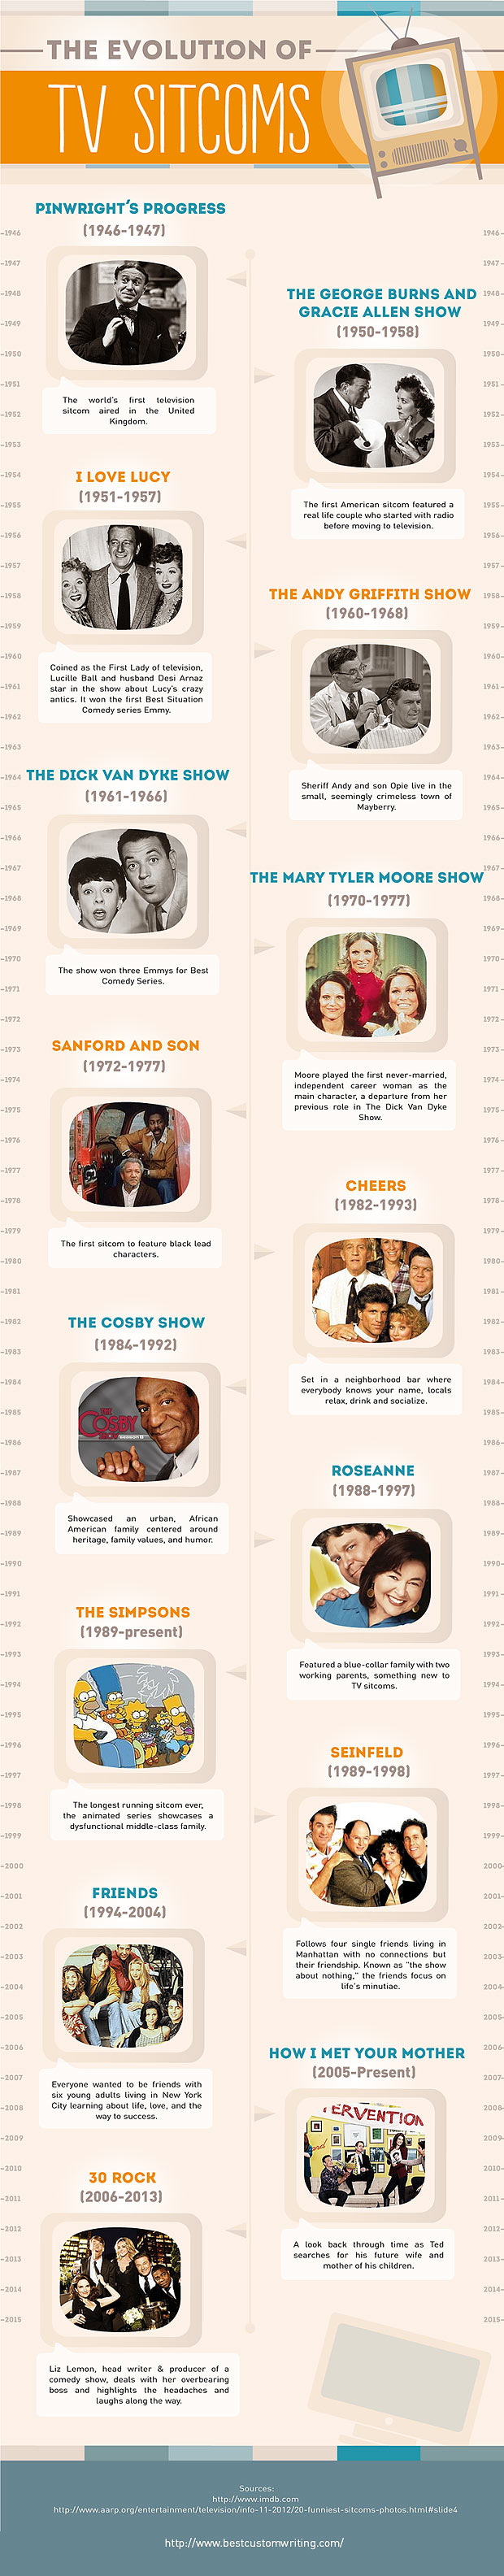 1evolution-of-tv-sitcoms